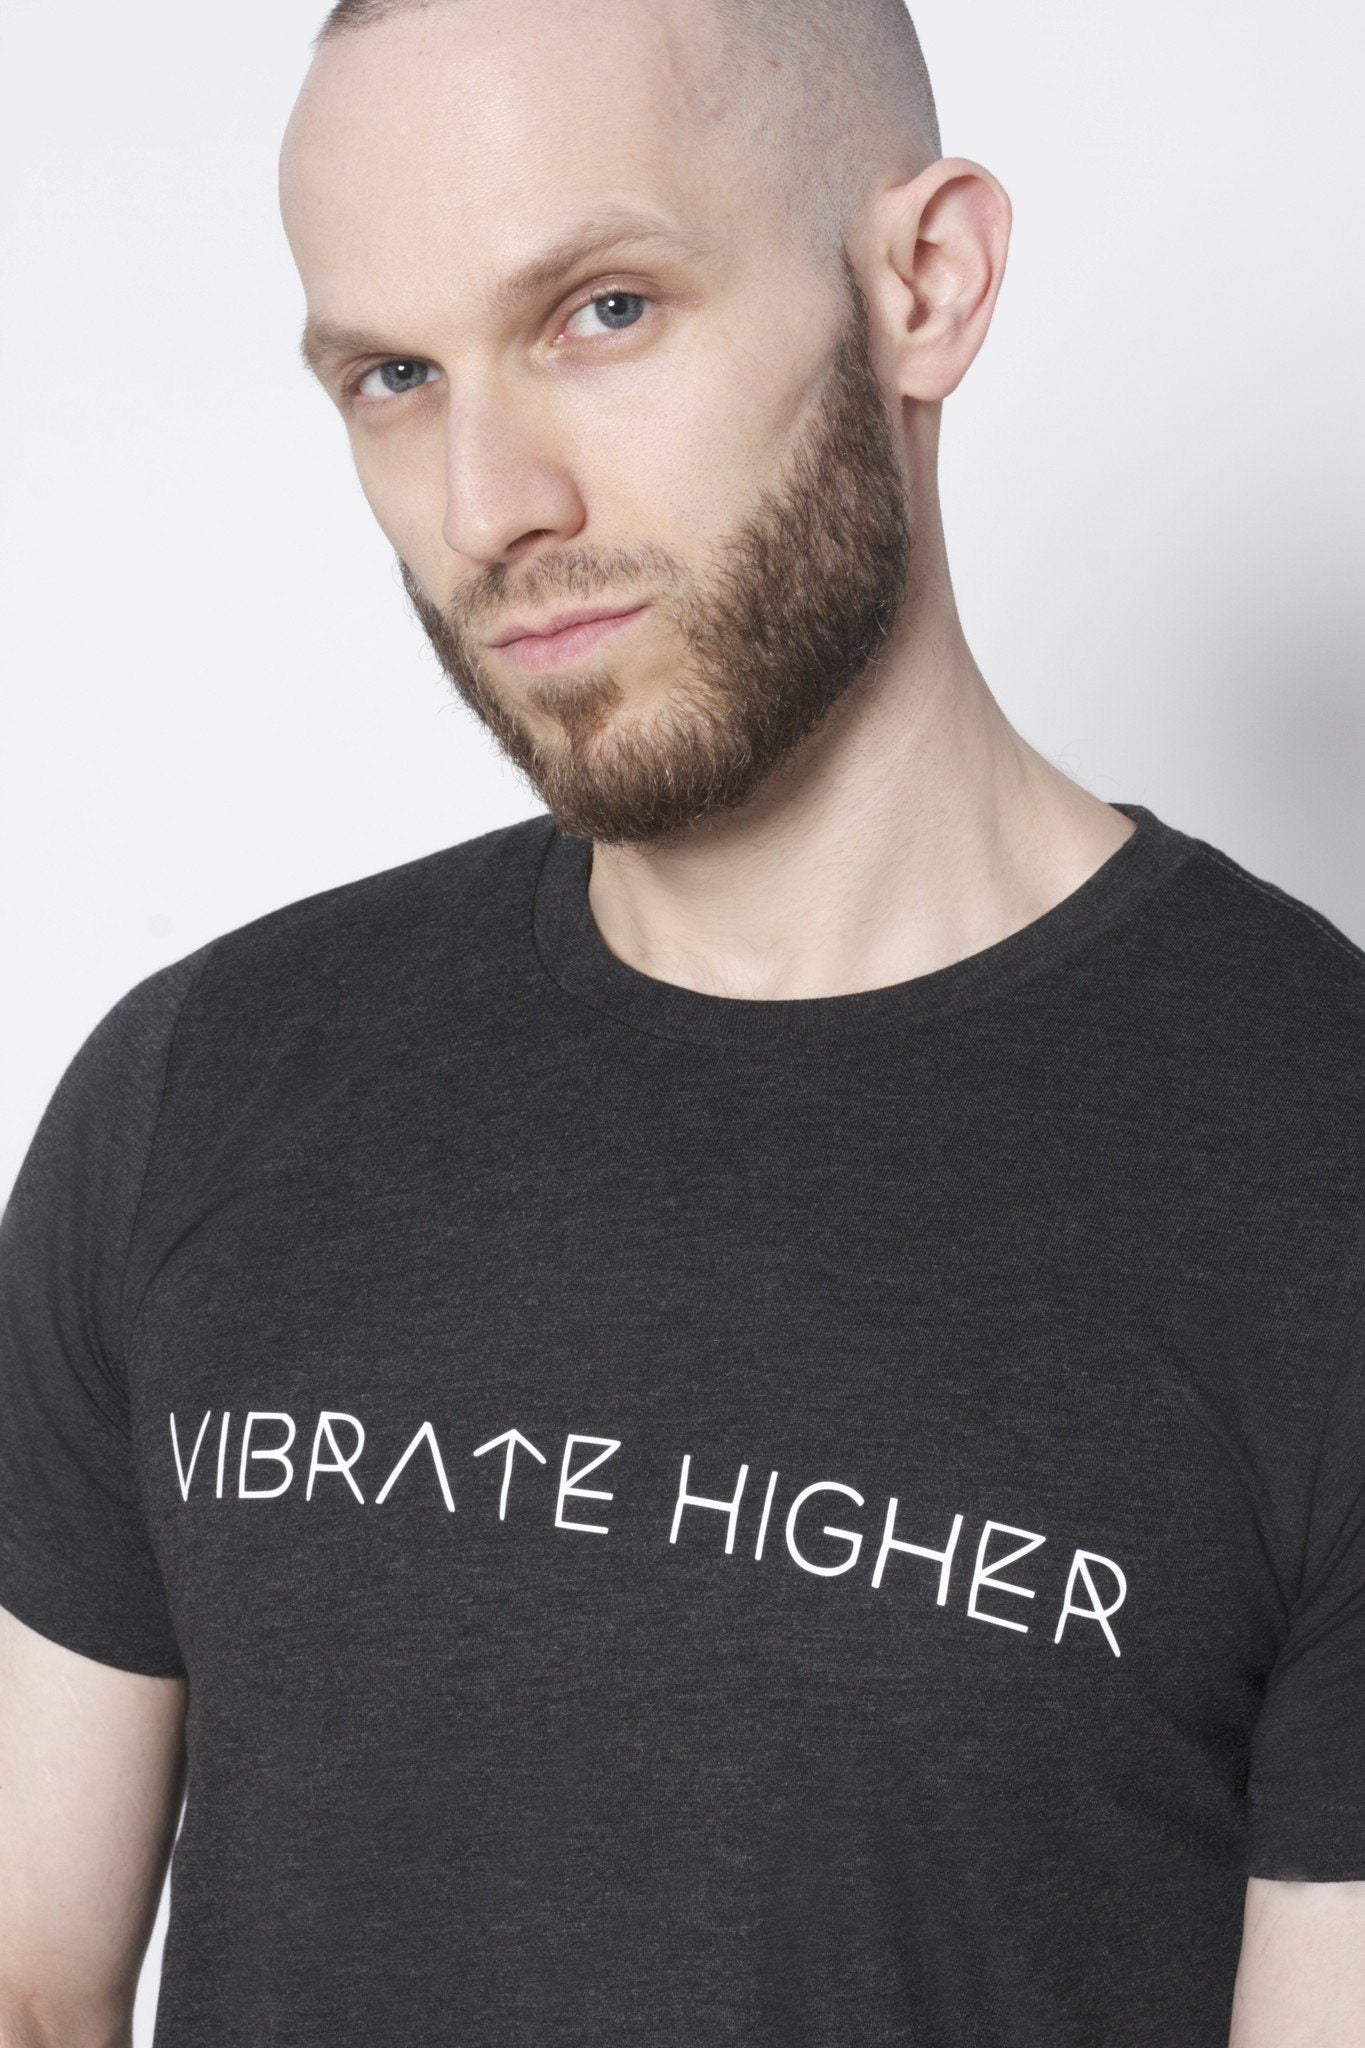 Vibrate Higher T-Shirt - Vibrate Higher